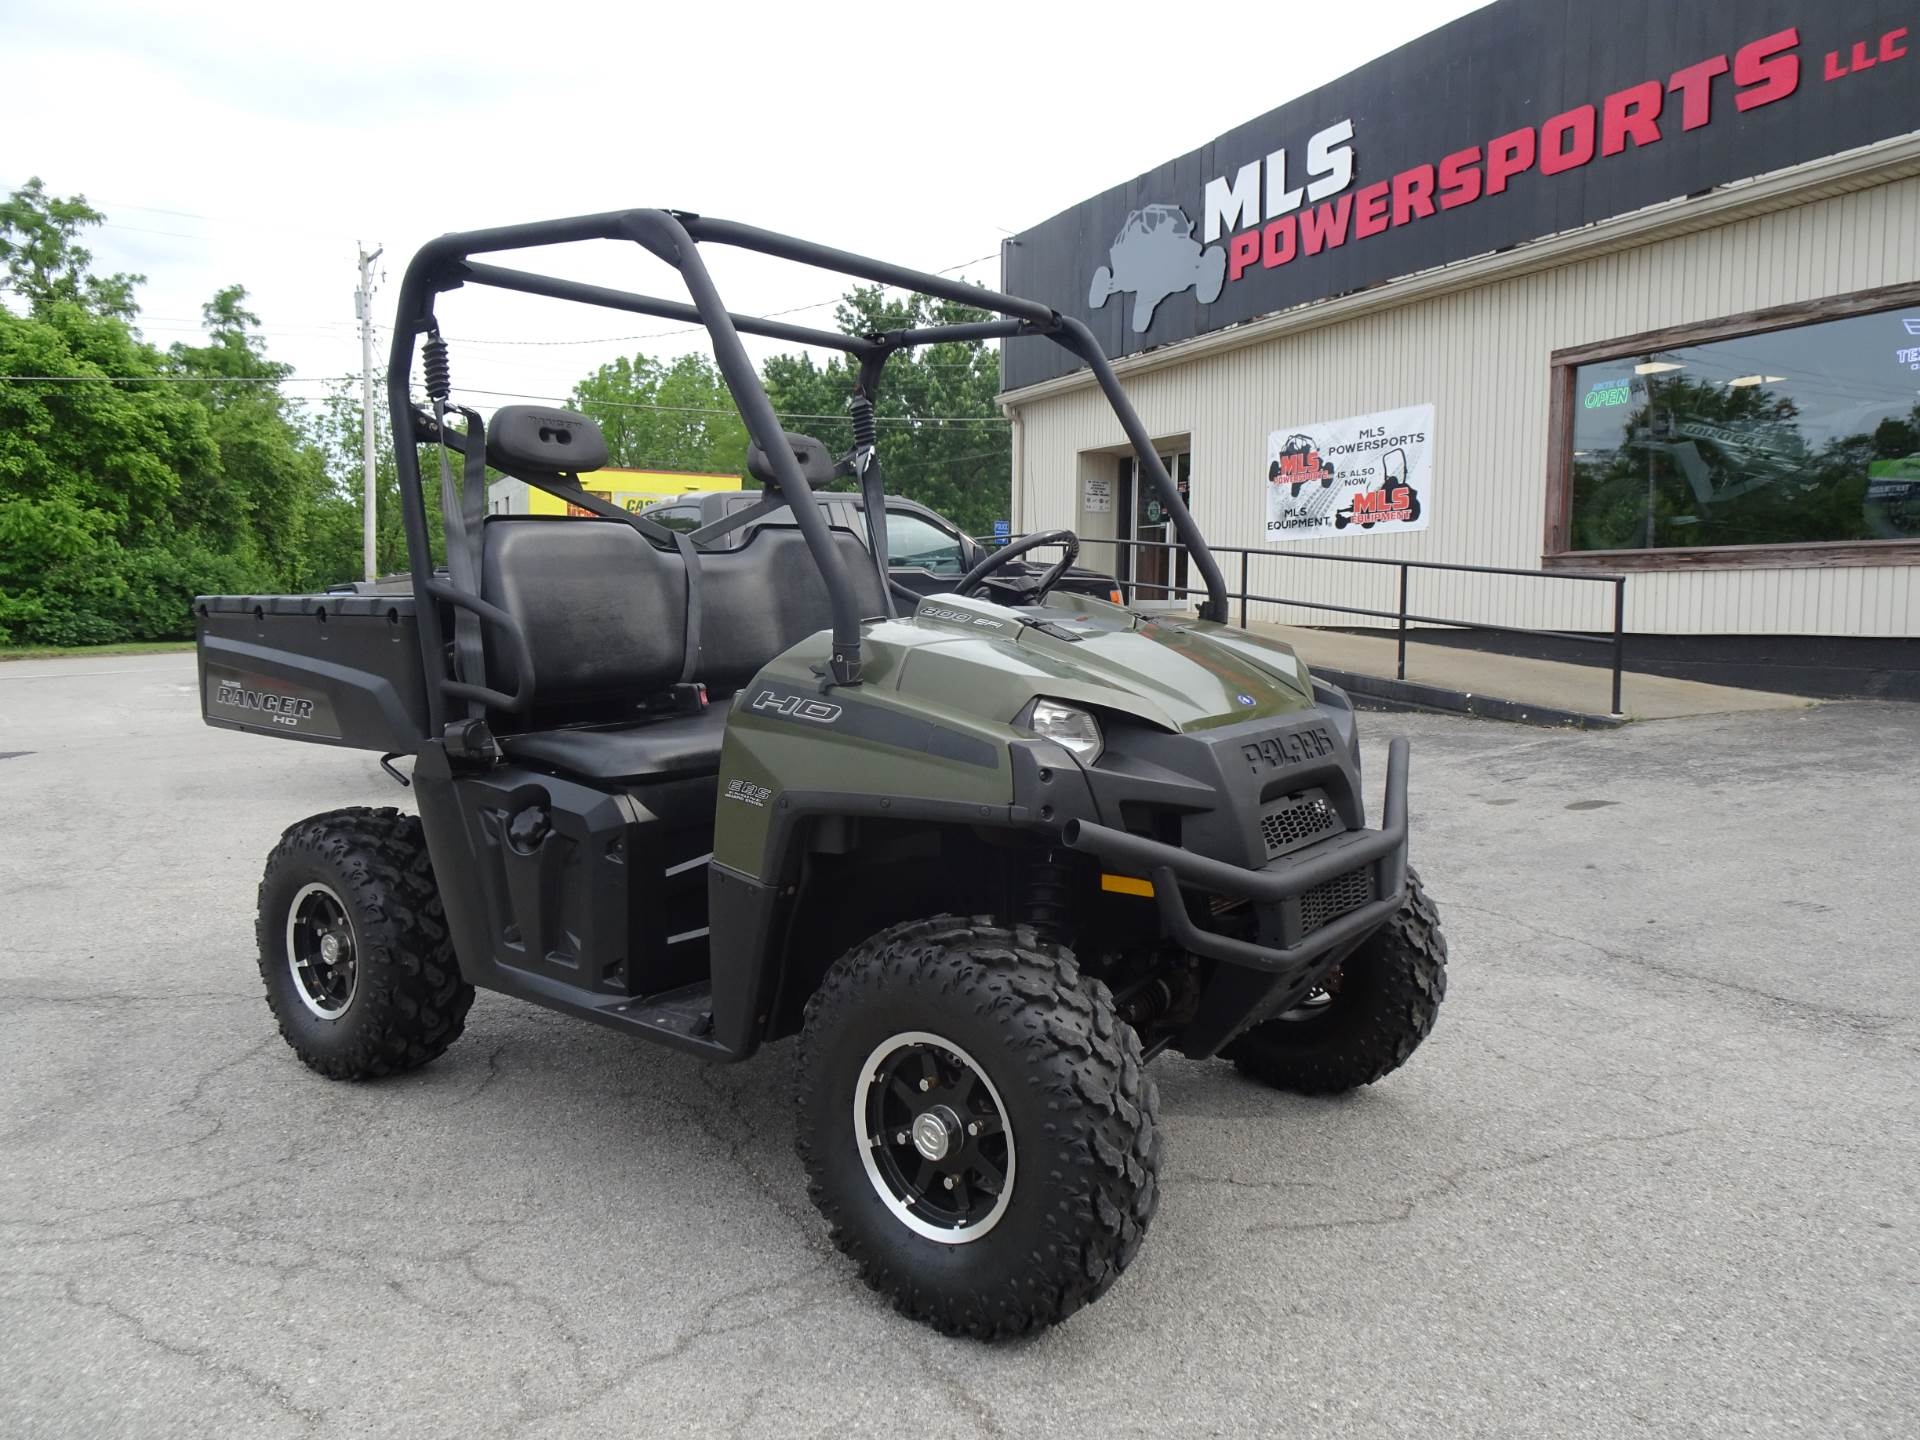 2012 Polaris Ranger® HD 800 in Georgetown, Kentucky - Photo 1